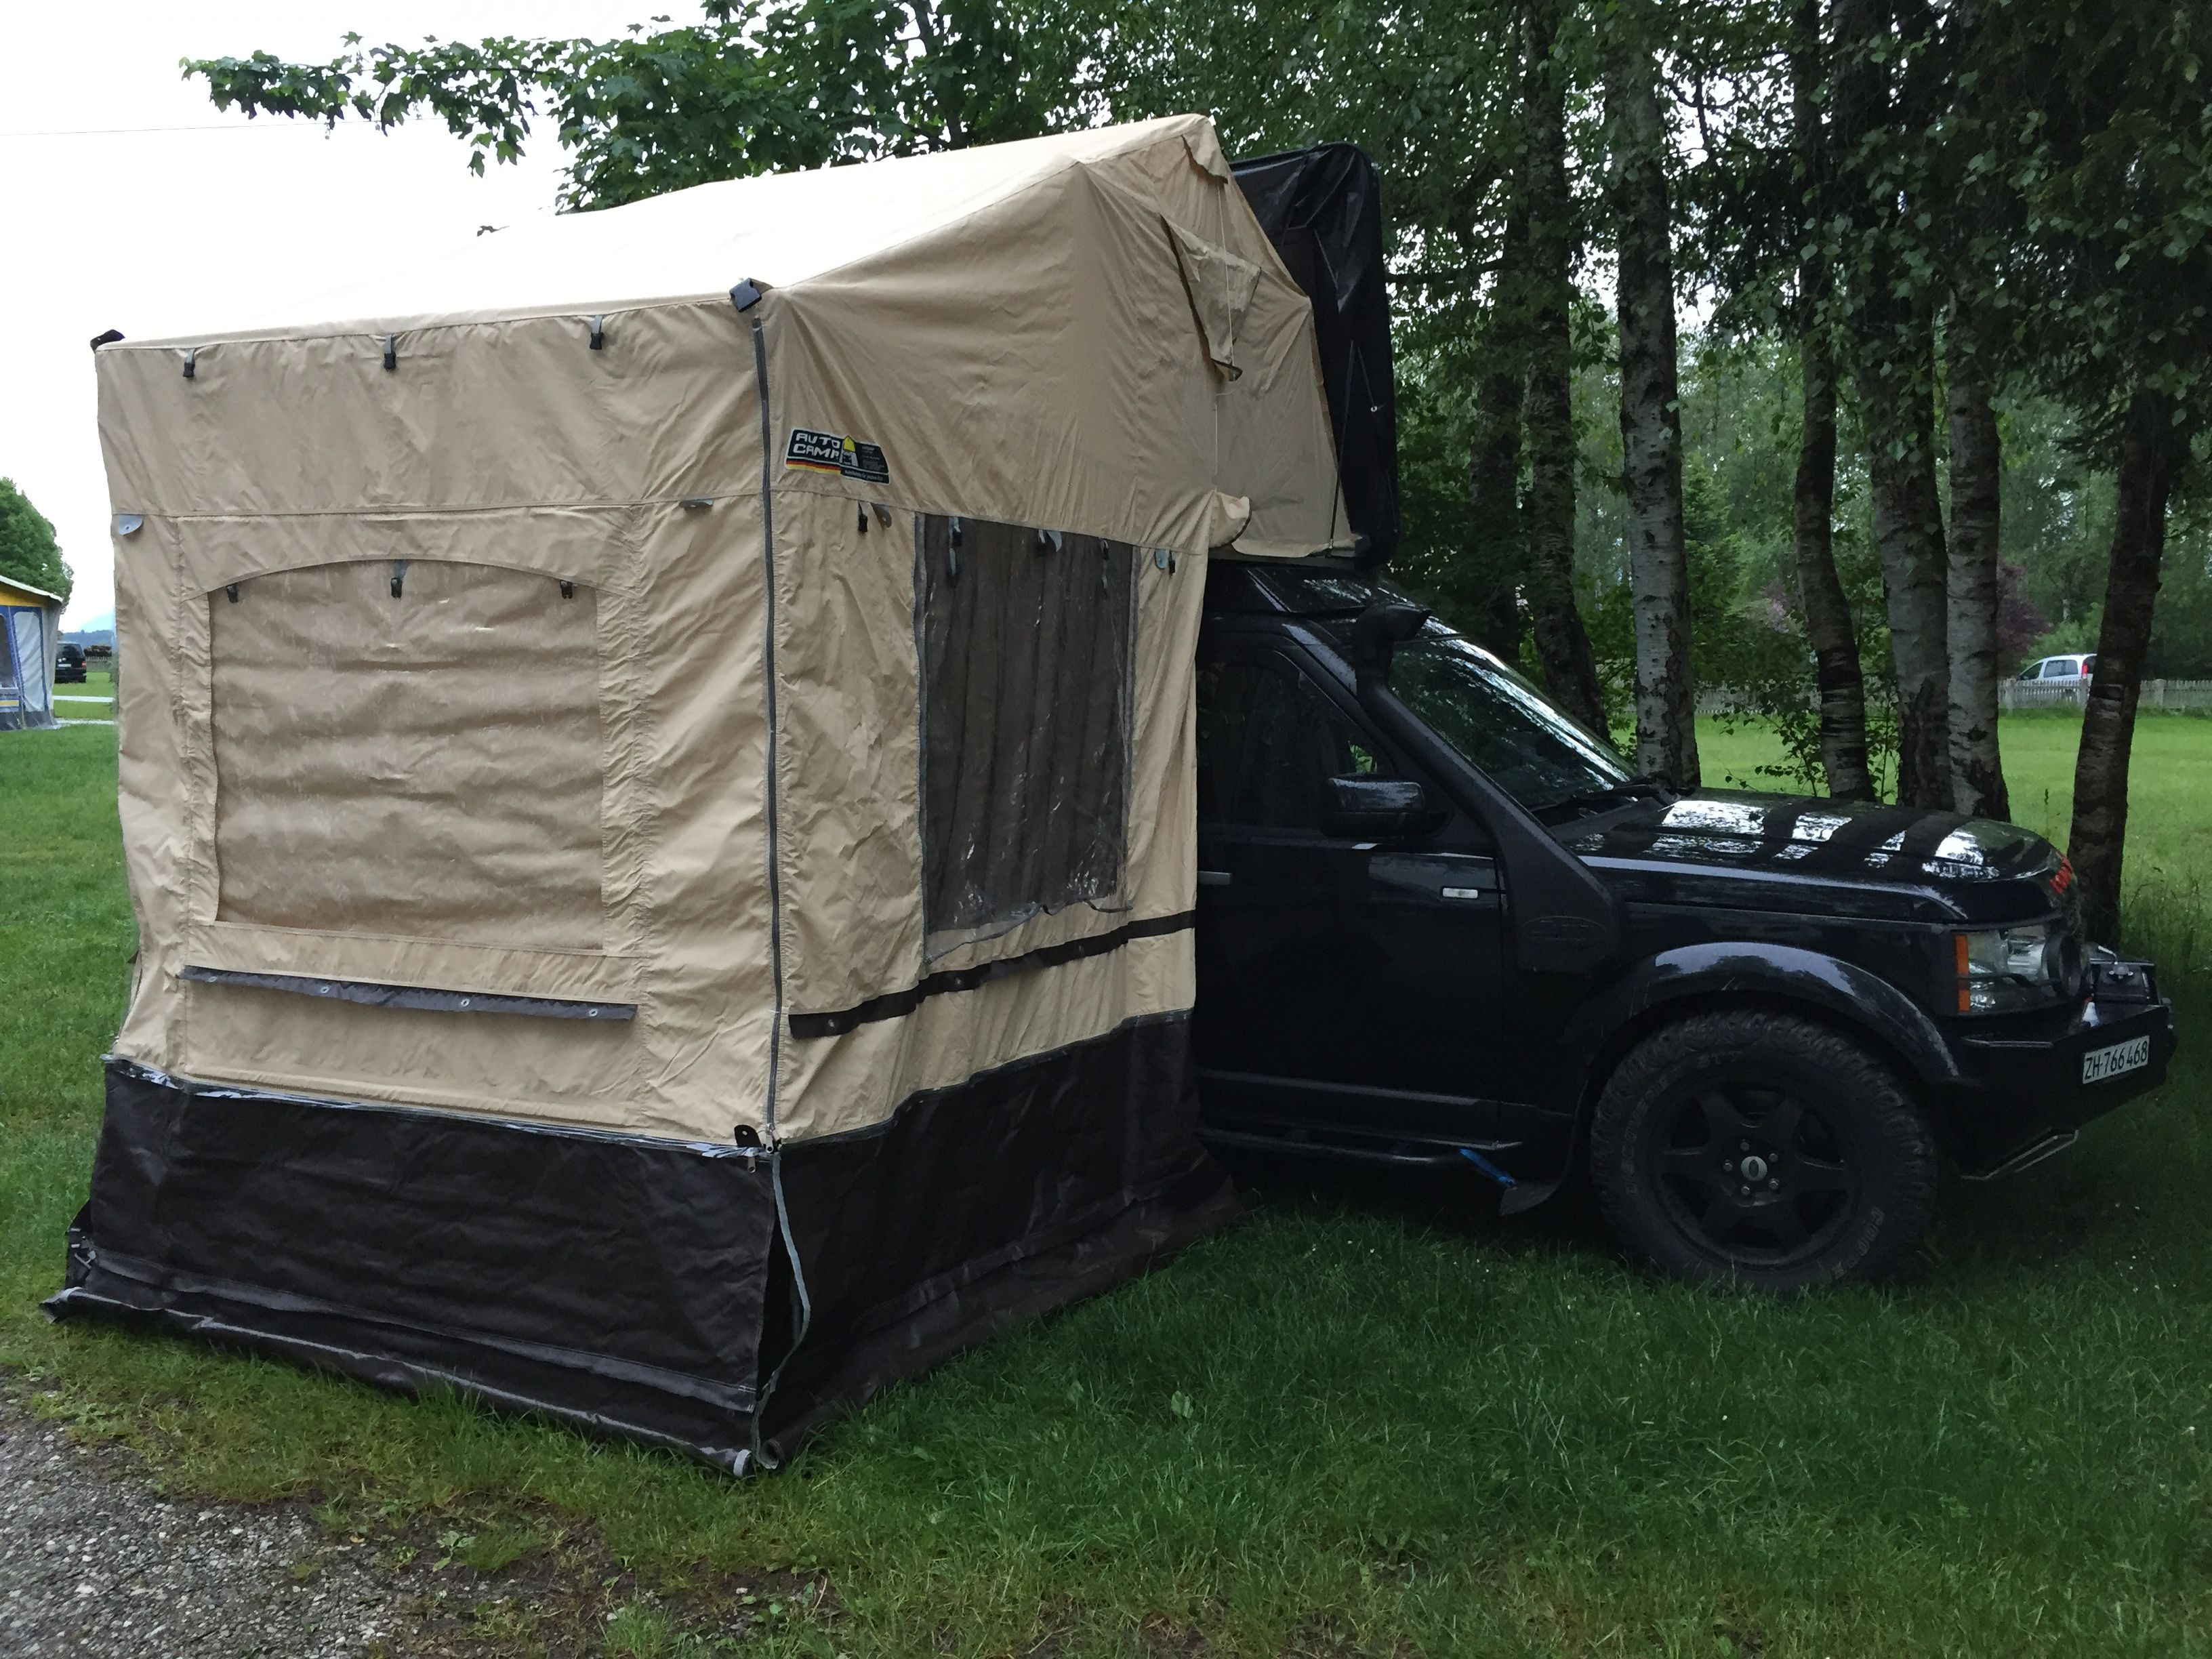 Discovery with roof tent & Discovery with roof tent | Discovery 3 u0026 4 | Pinterest | Land rovers